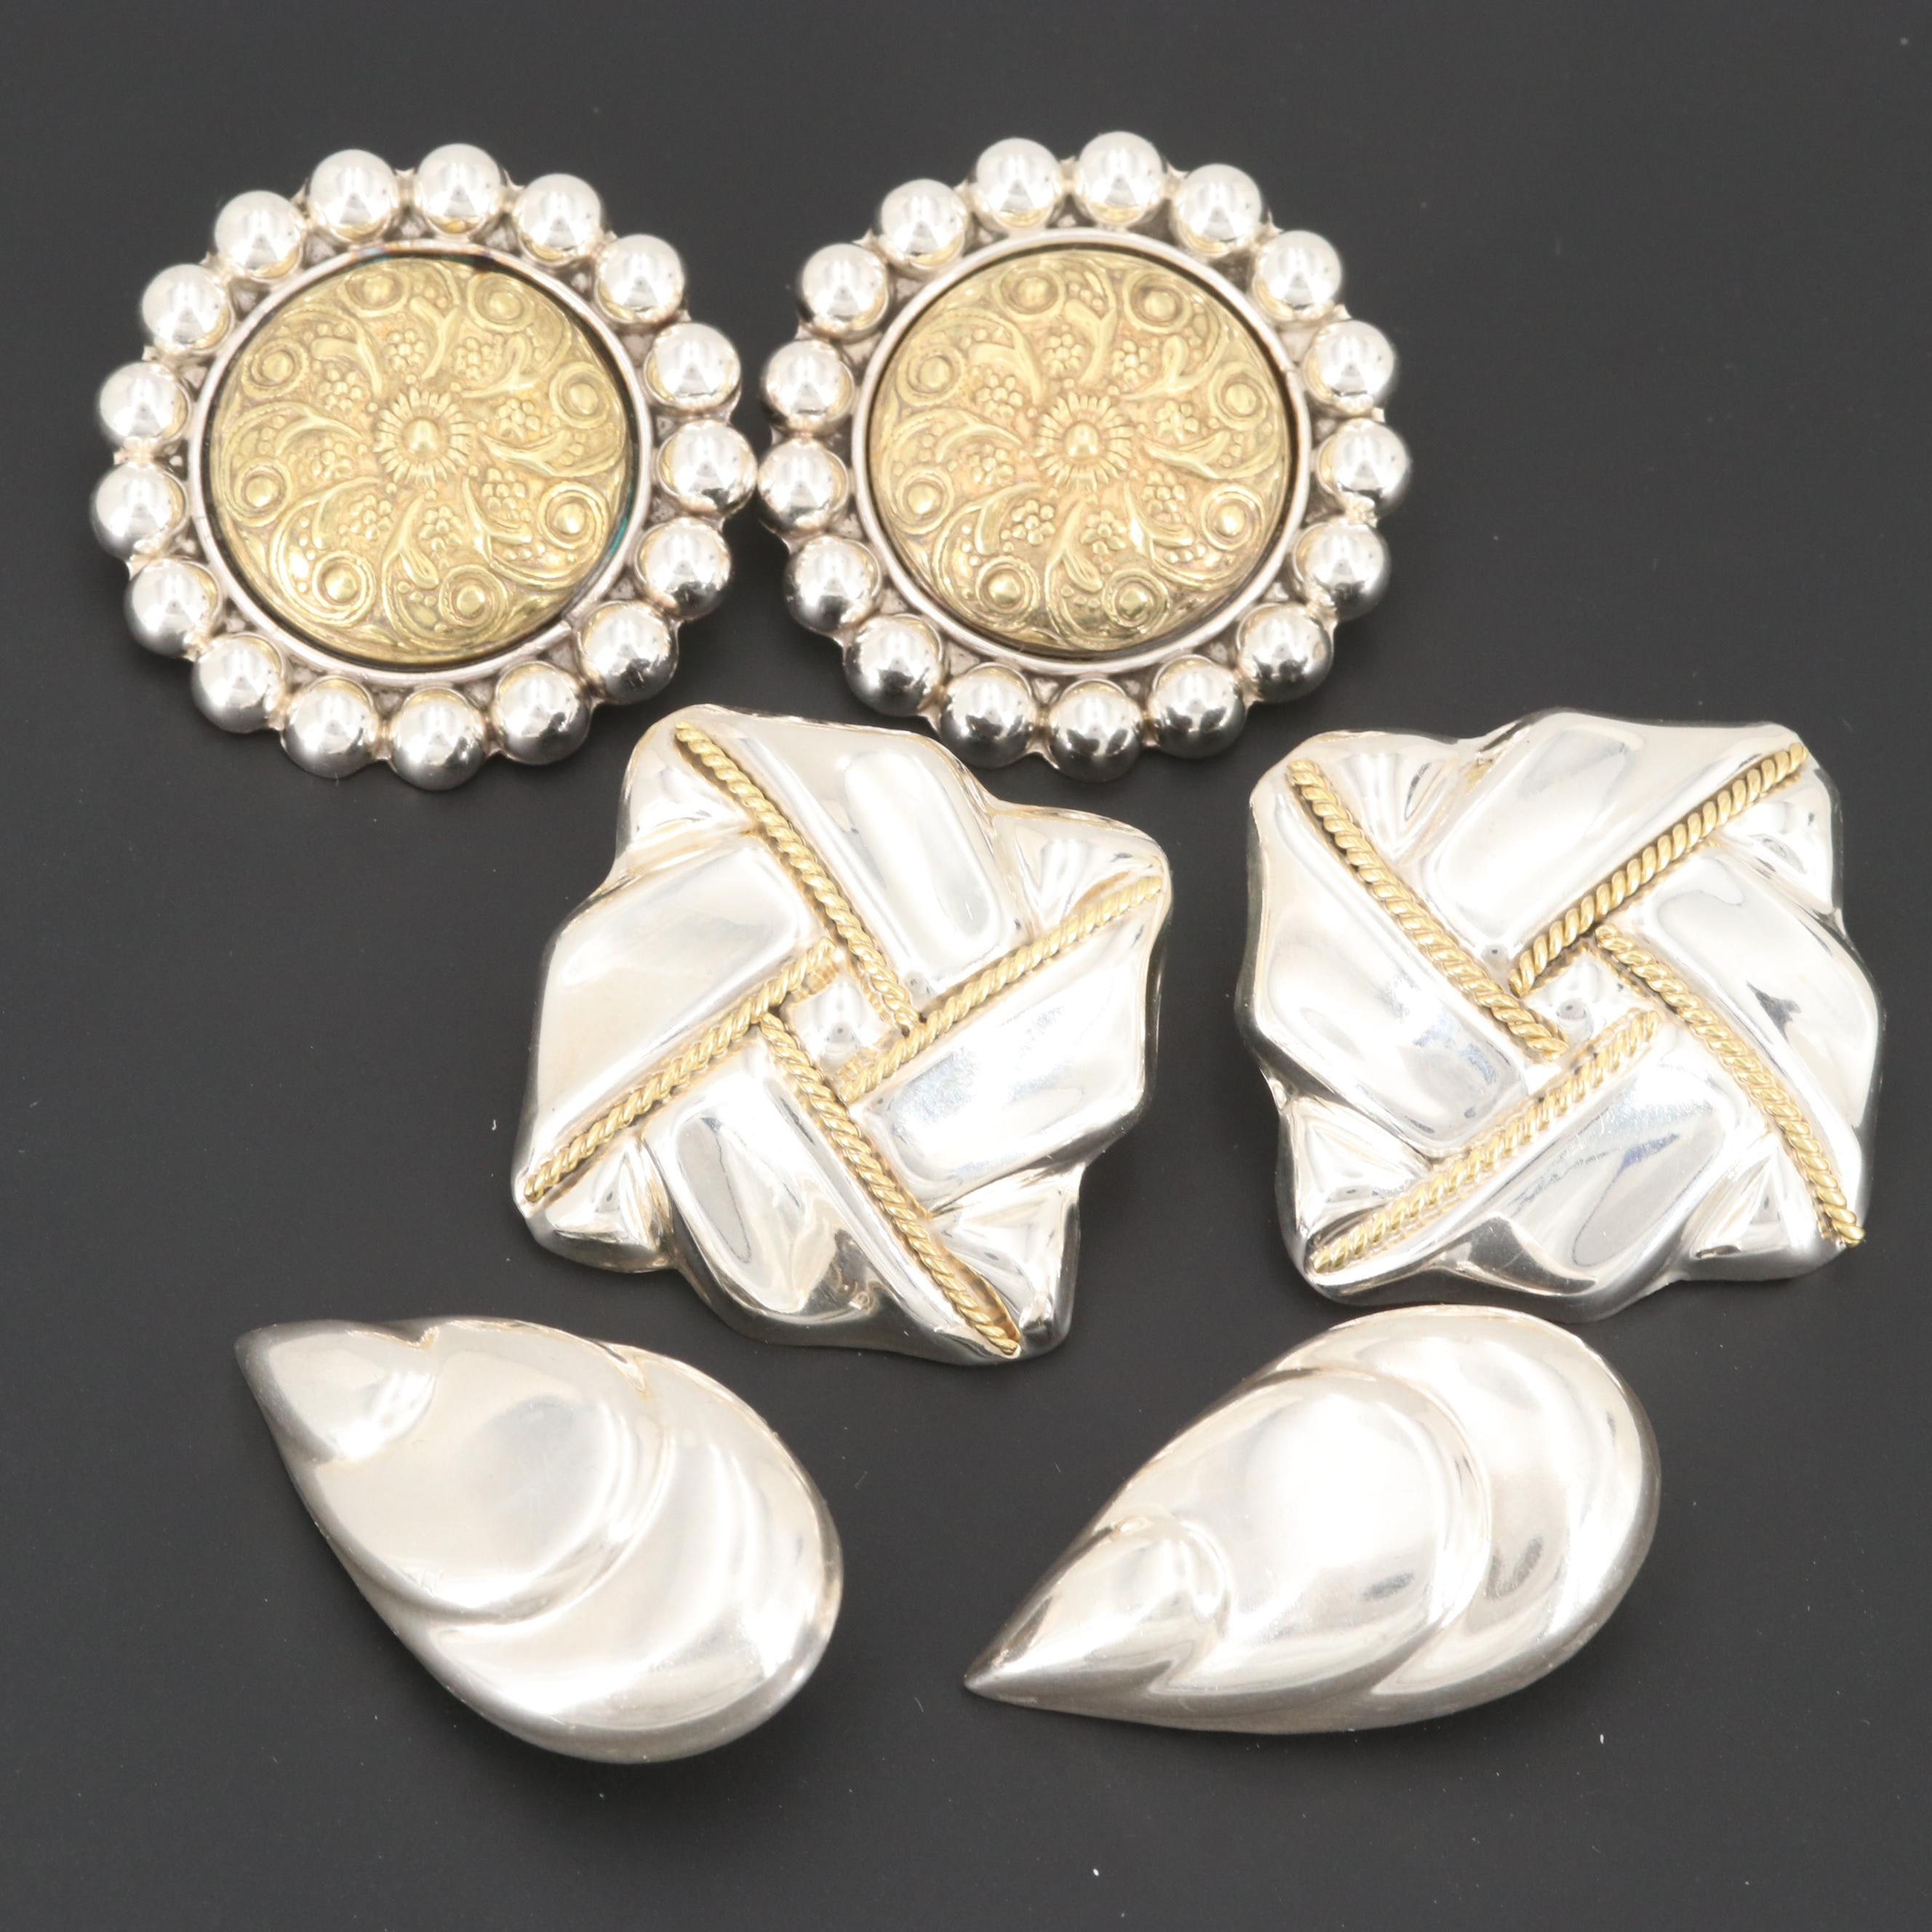 Mexican Sterling Earrings Featuring Talleres De Los Ballesteros and Gold Wash